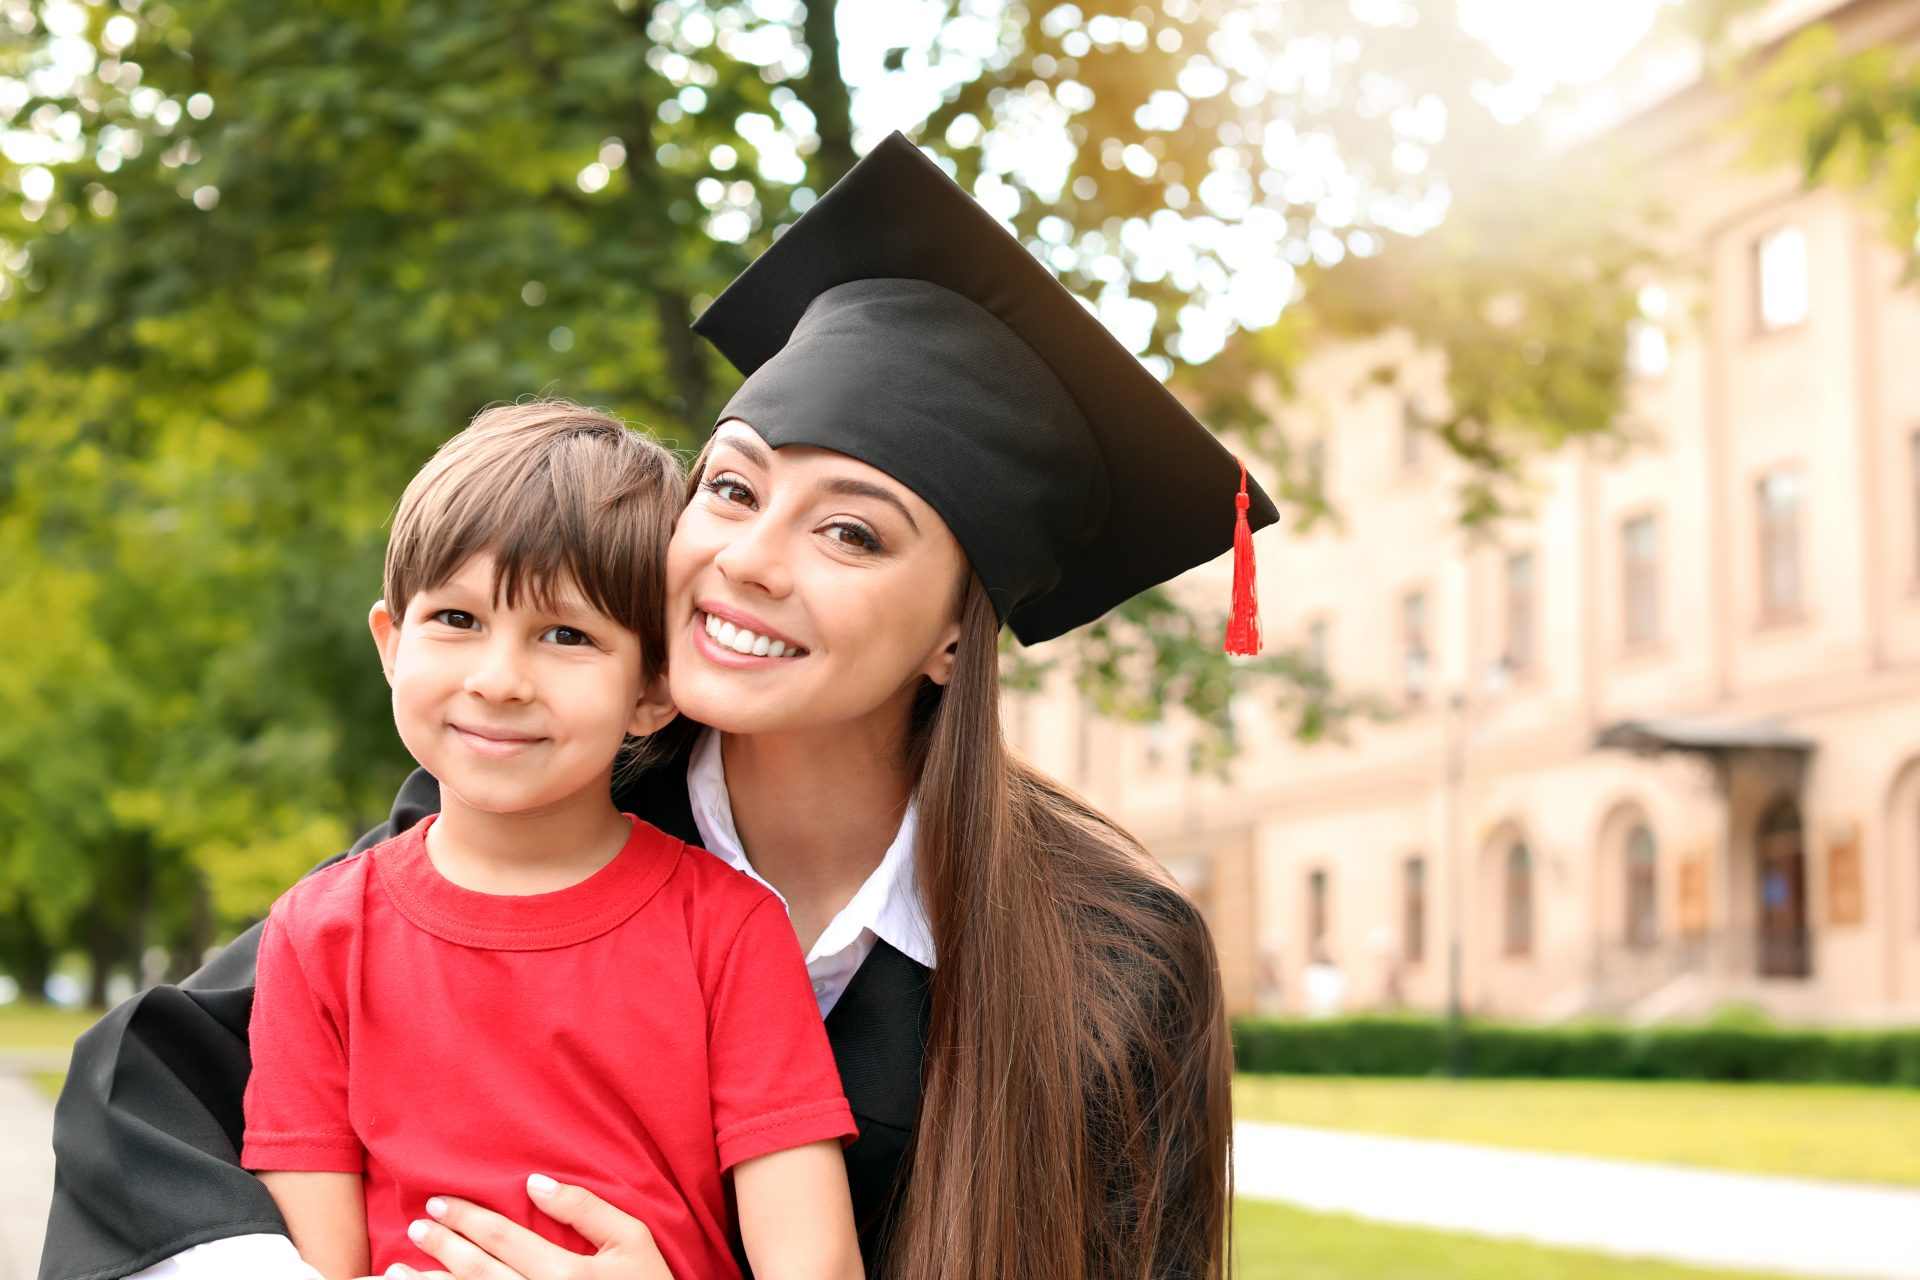 young woman wearing graduation cap and gown, holding young child. Both smile at camera.